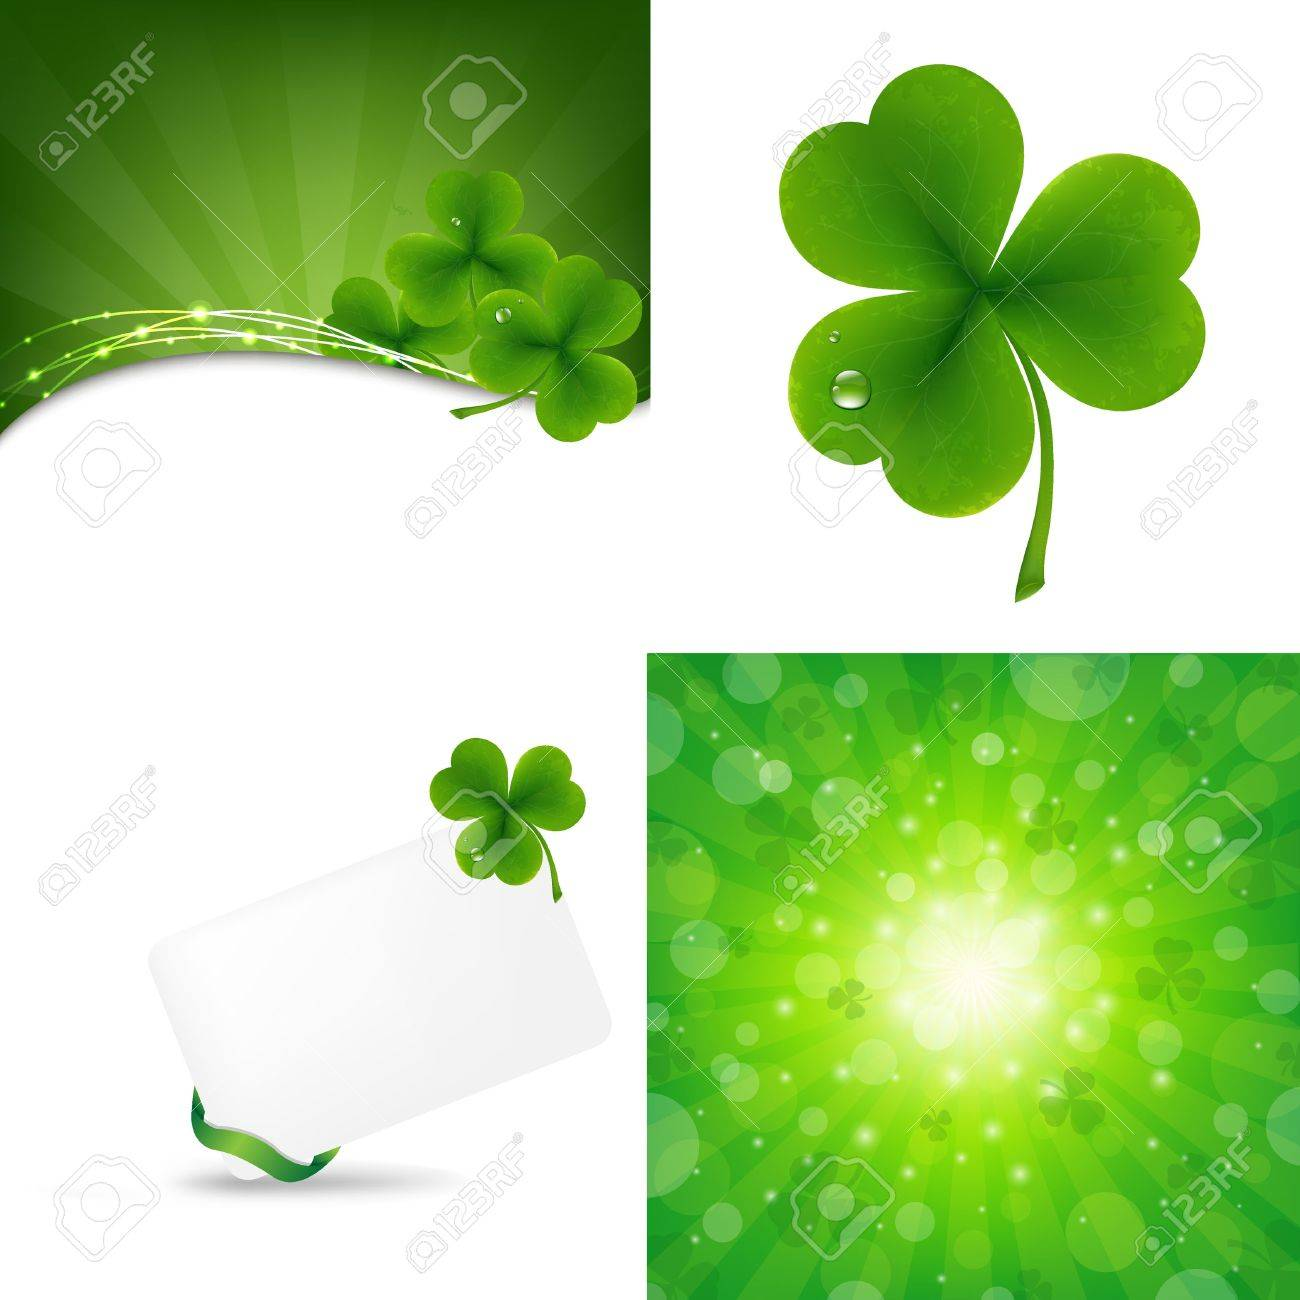 3 Green Background With Clover, Vector Illustration Stock Vector - 14442144